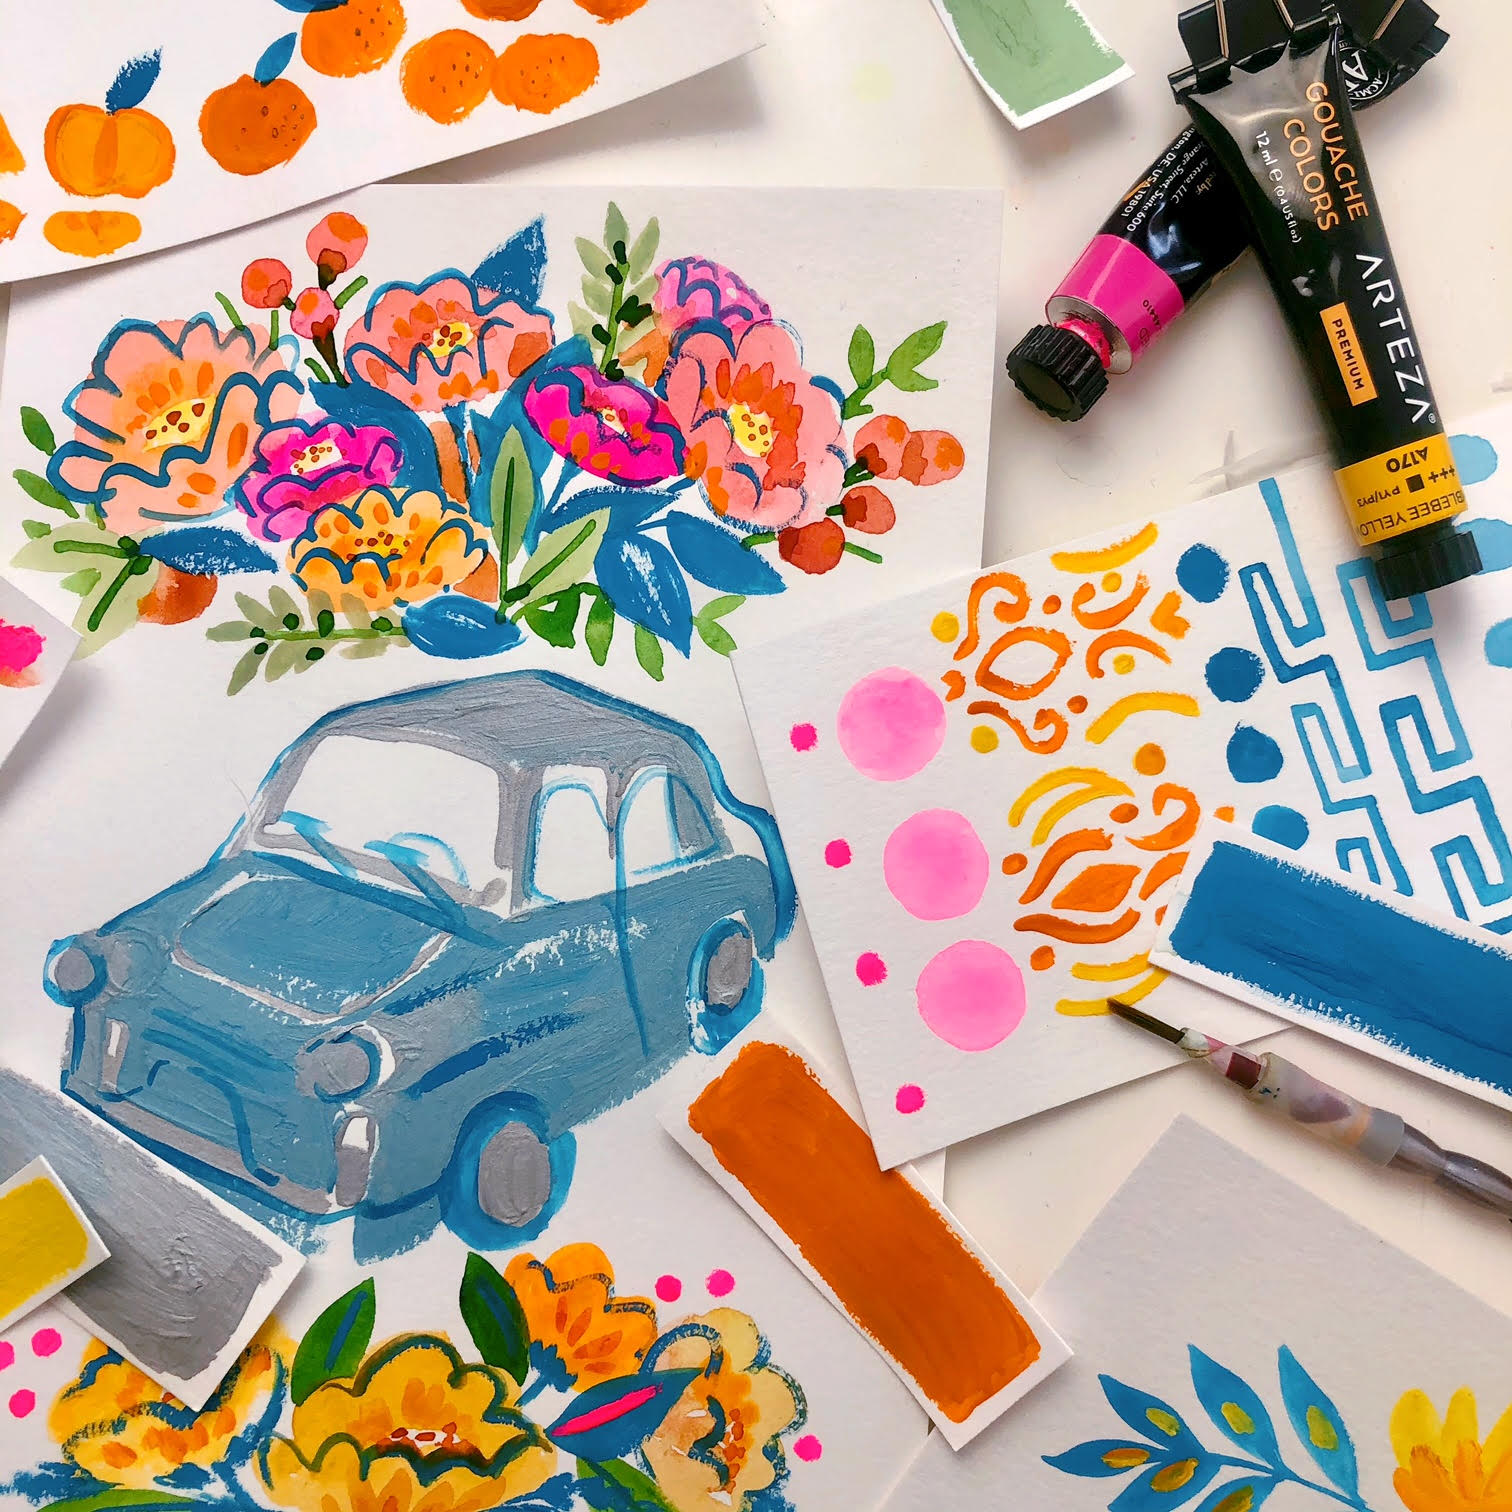 Drawings of flowers, cars, and other doodles on paper